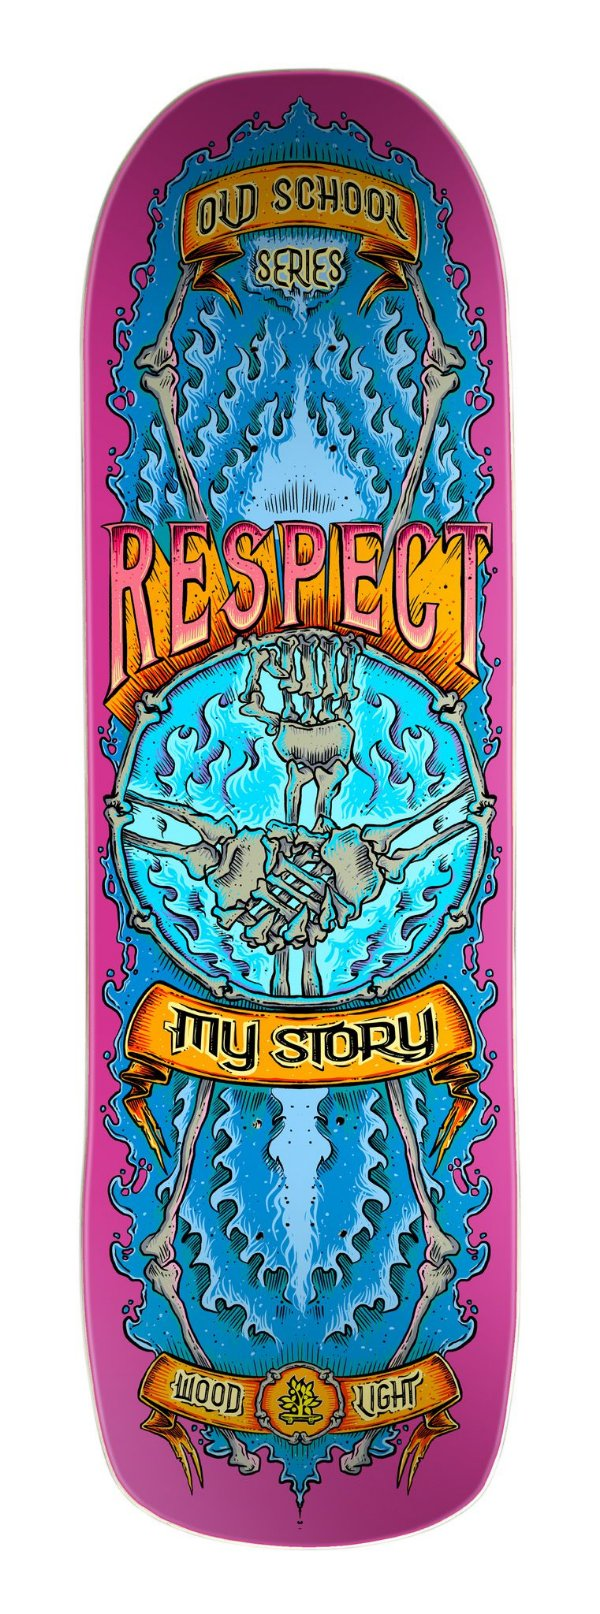 Shape Wood Light Old School Double - Respect Pink